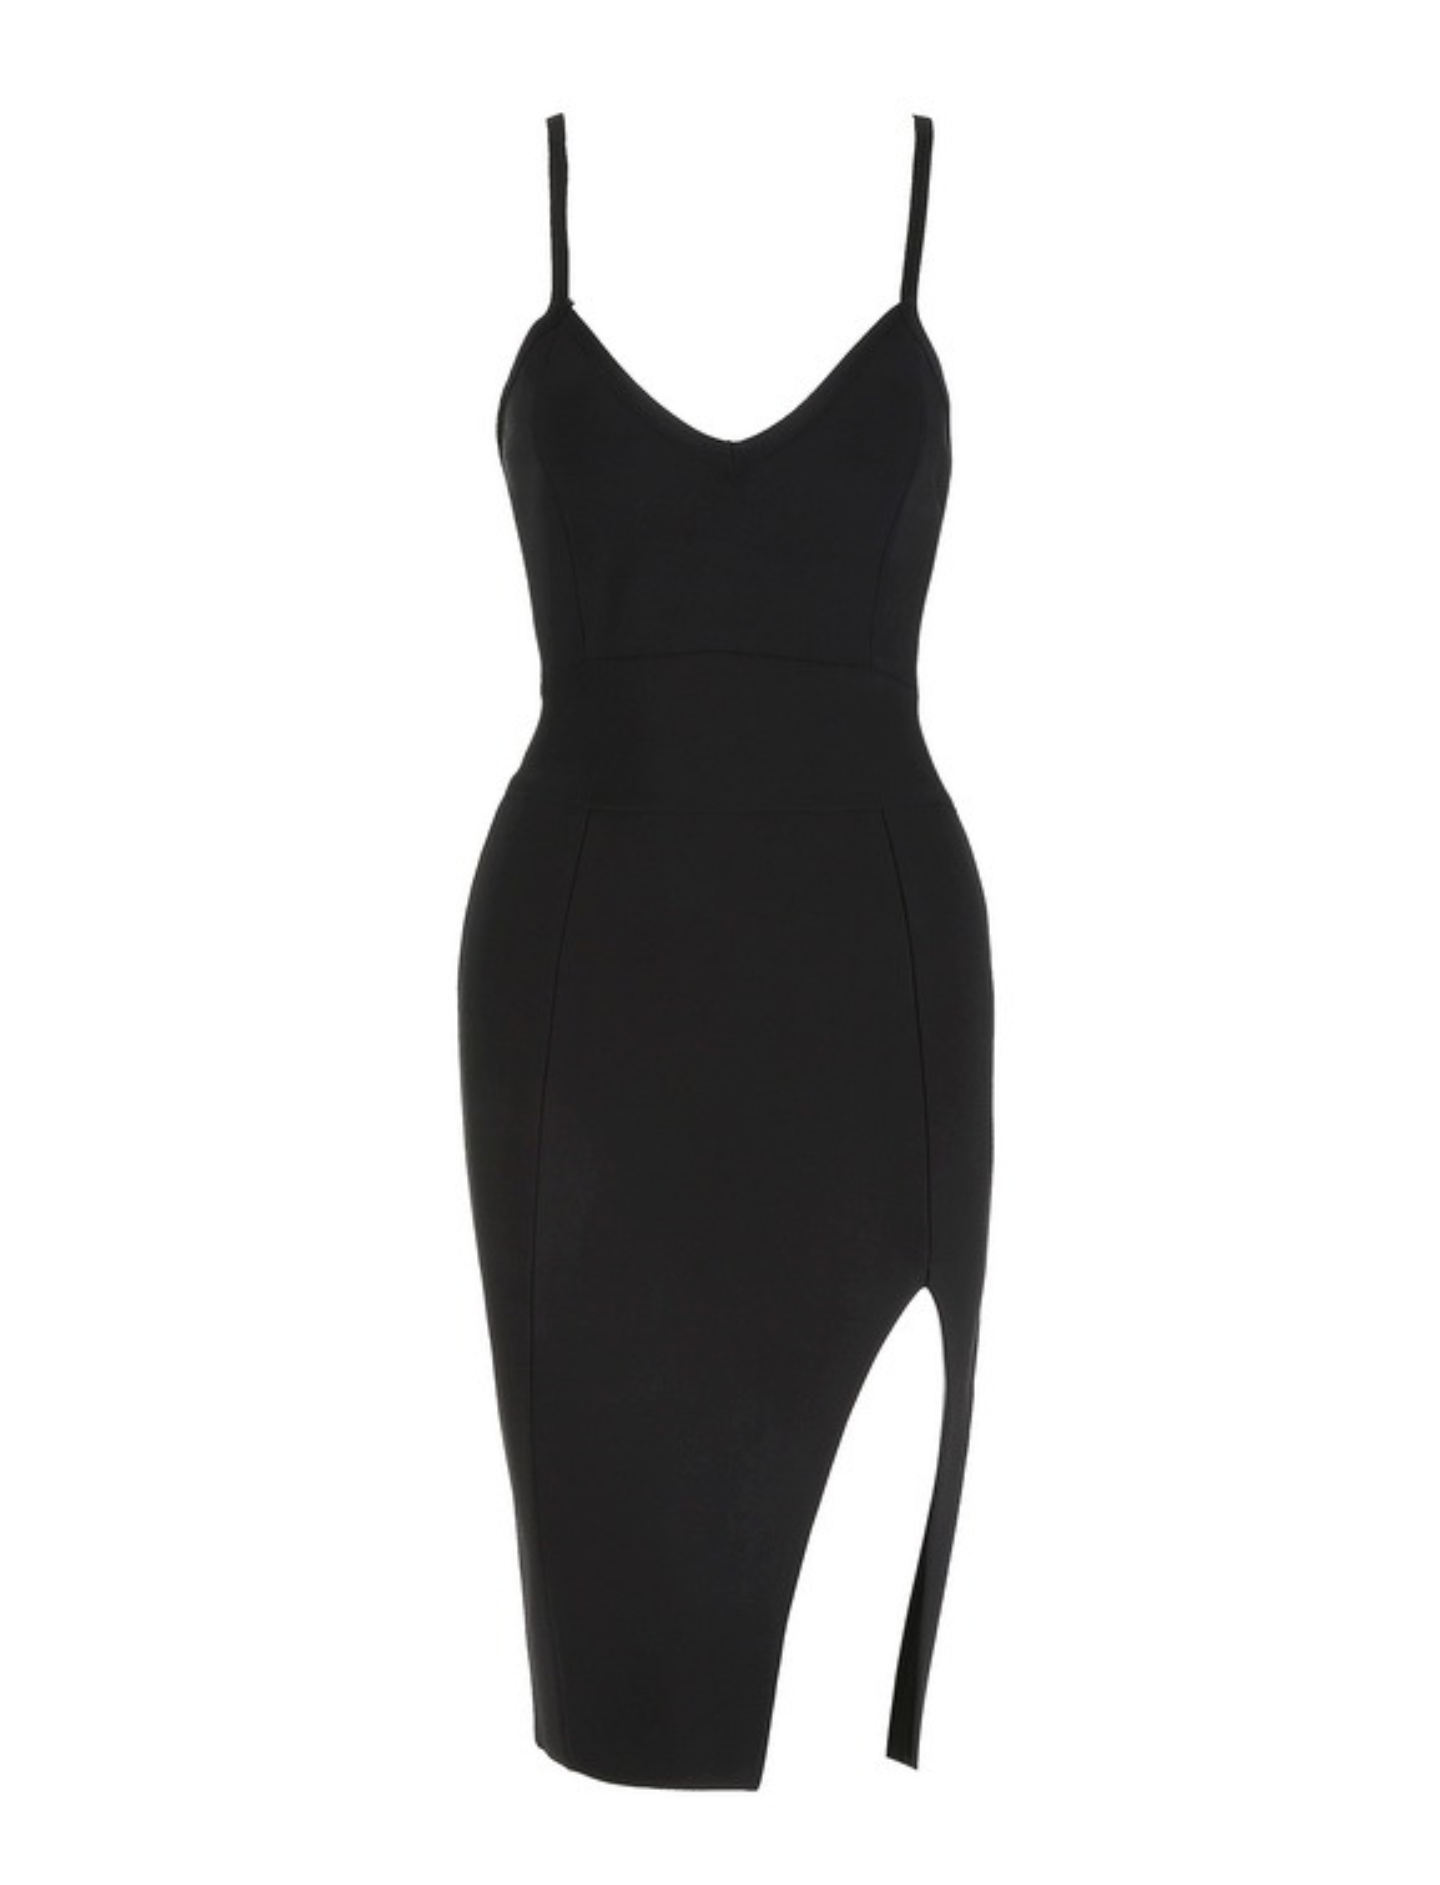 Party On The Road Dress Simple Black Dress Black Dress Outfits